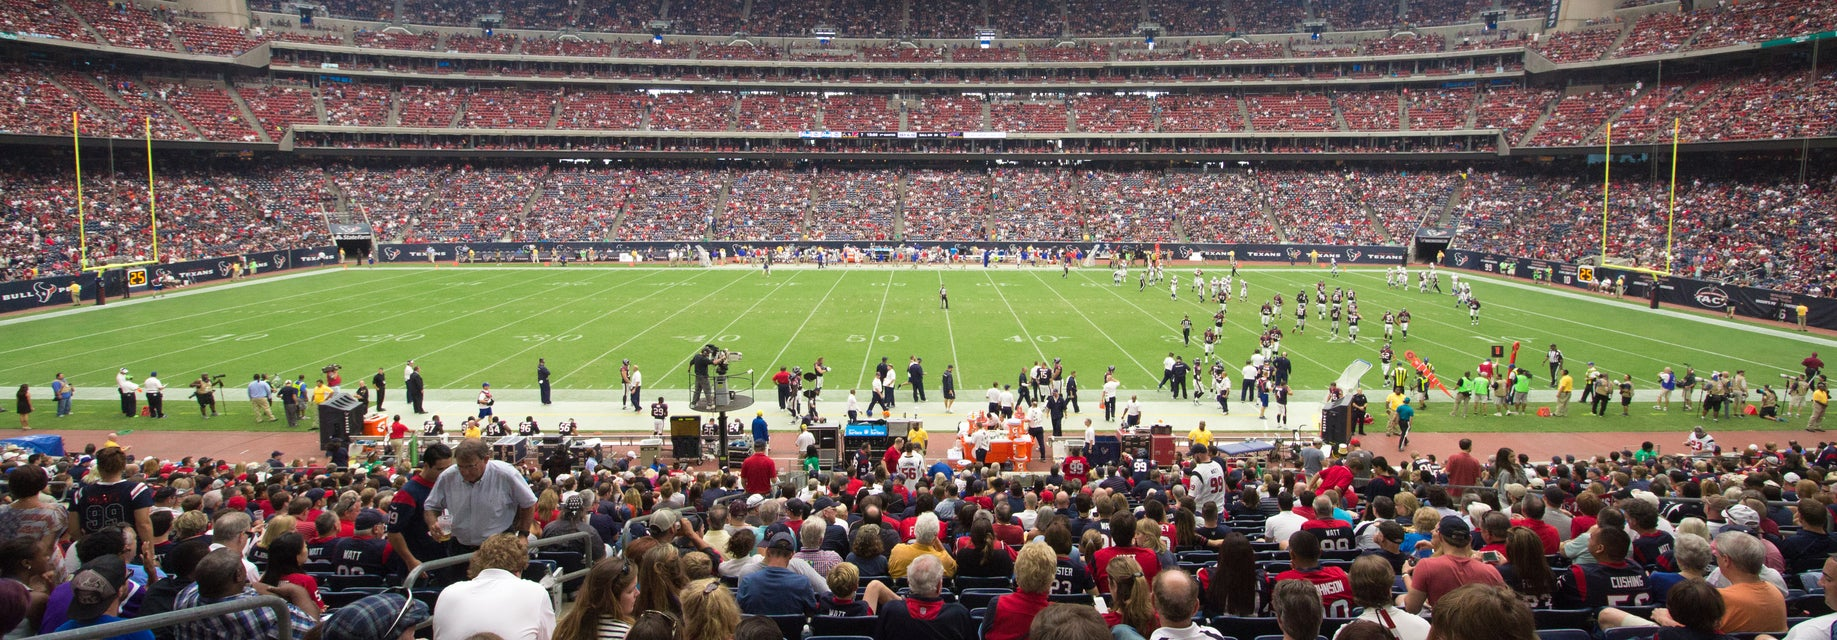 Seat view from Field Level Prime One